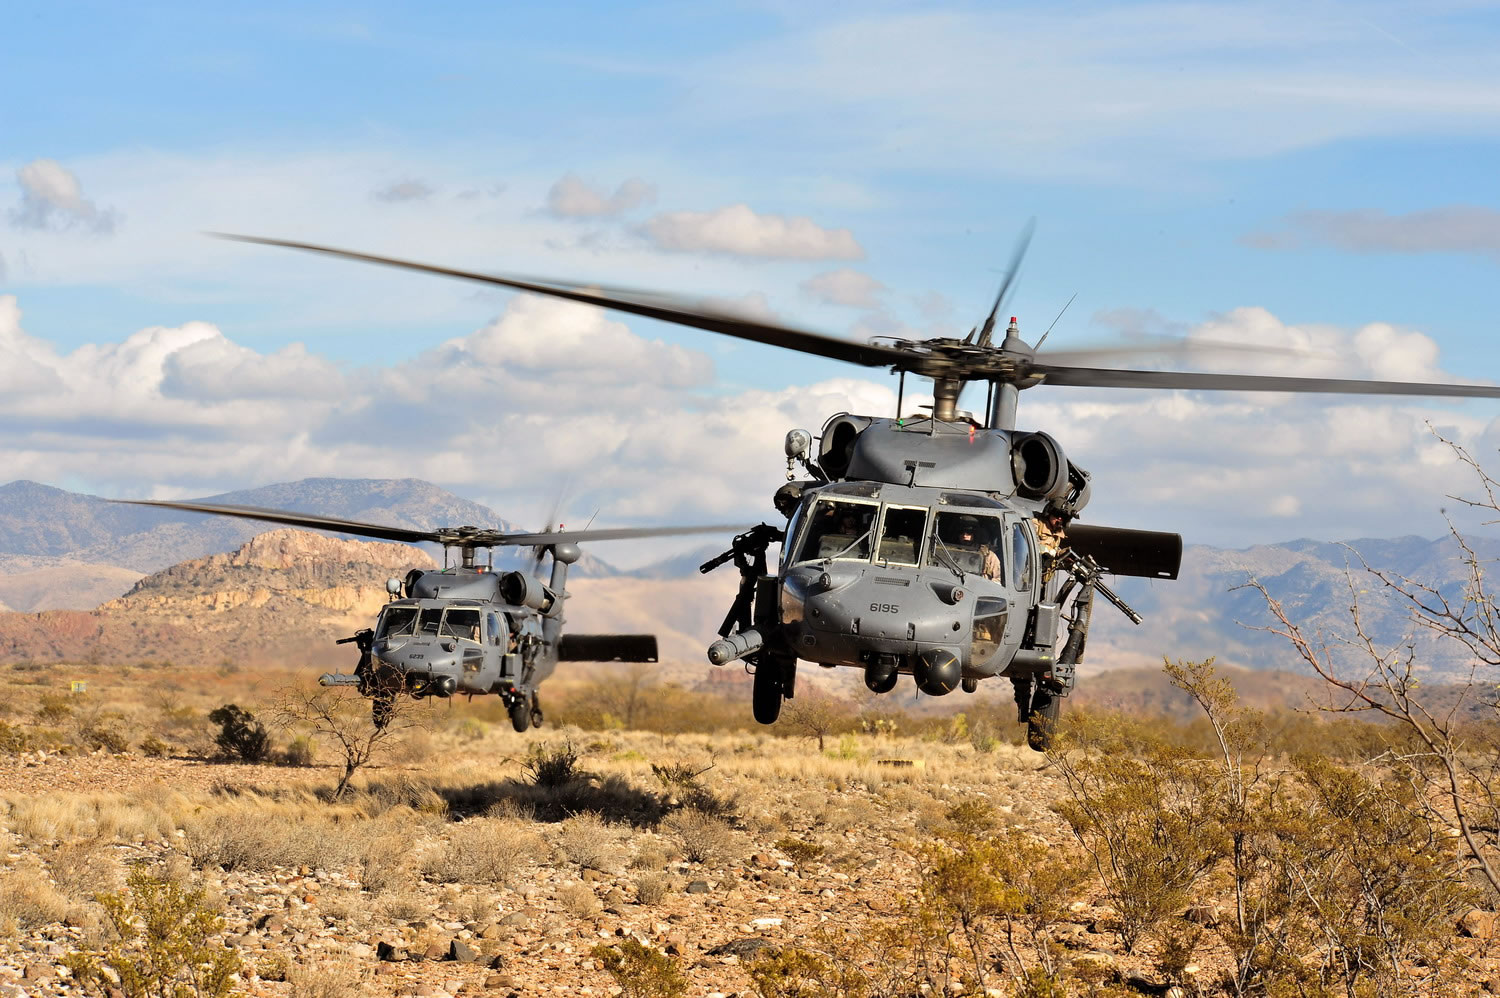 http://www.aircraftinformation.info/Images/UH-60_15.jpg